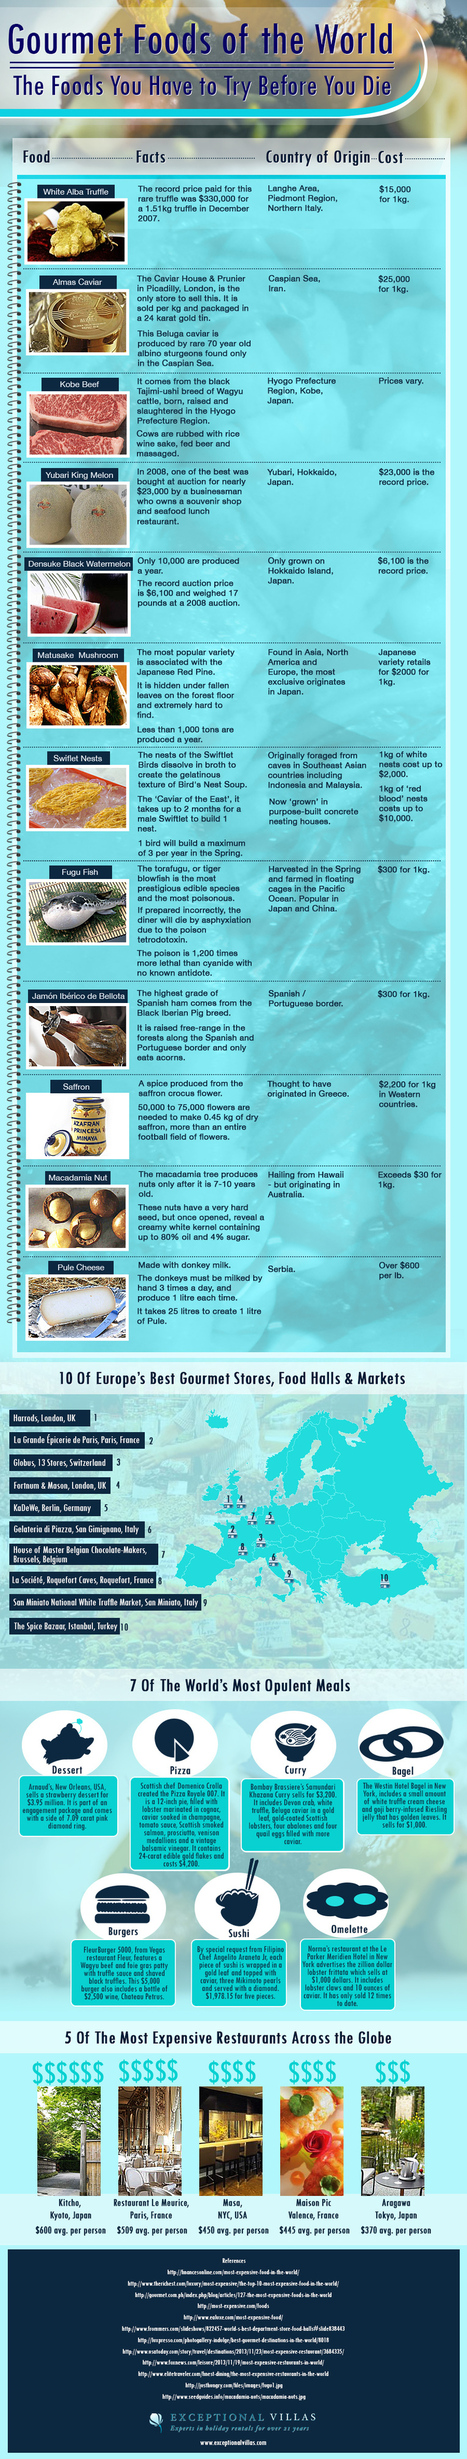 Gourmet Foods of the World - Infographic | Foodie dreams | Scoop.it